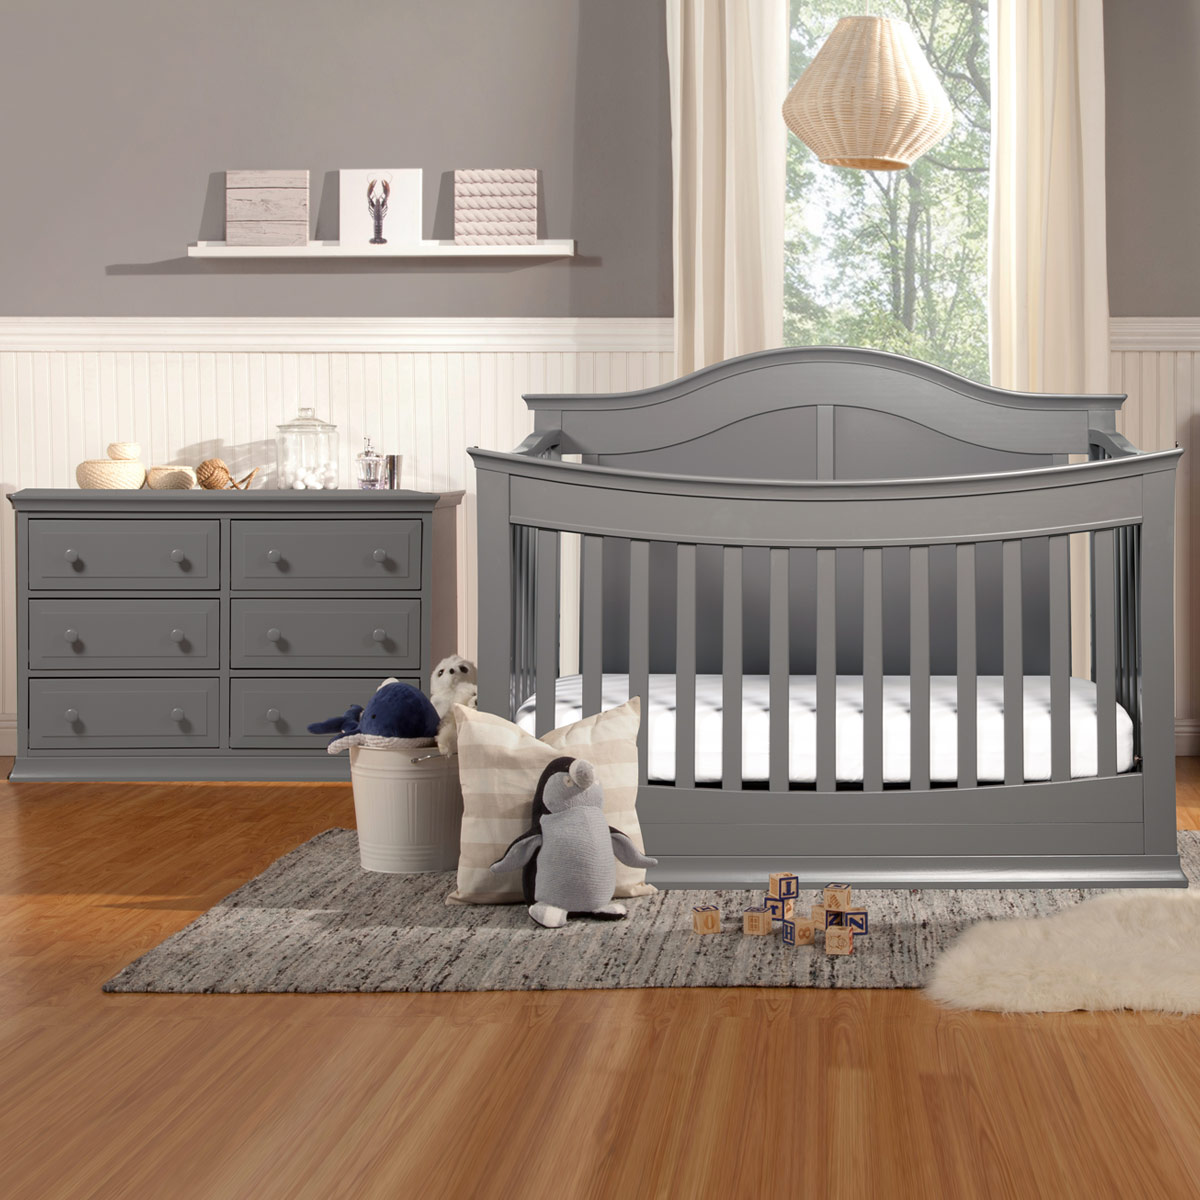 Davinci Meadow 2 Piece Nursery Set 4 In 1 Convertible Crib And Signature 6 Drawer Double Dresser Slate Free Shipping